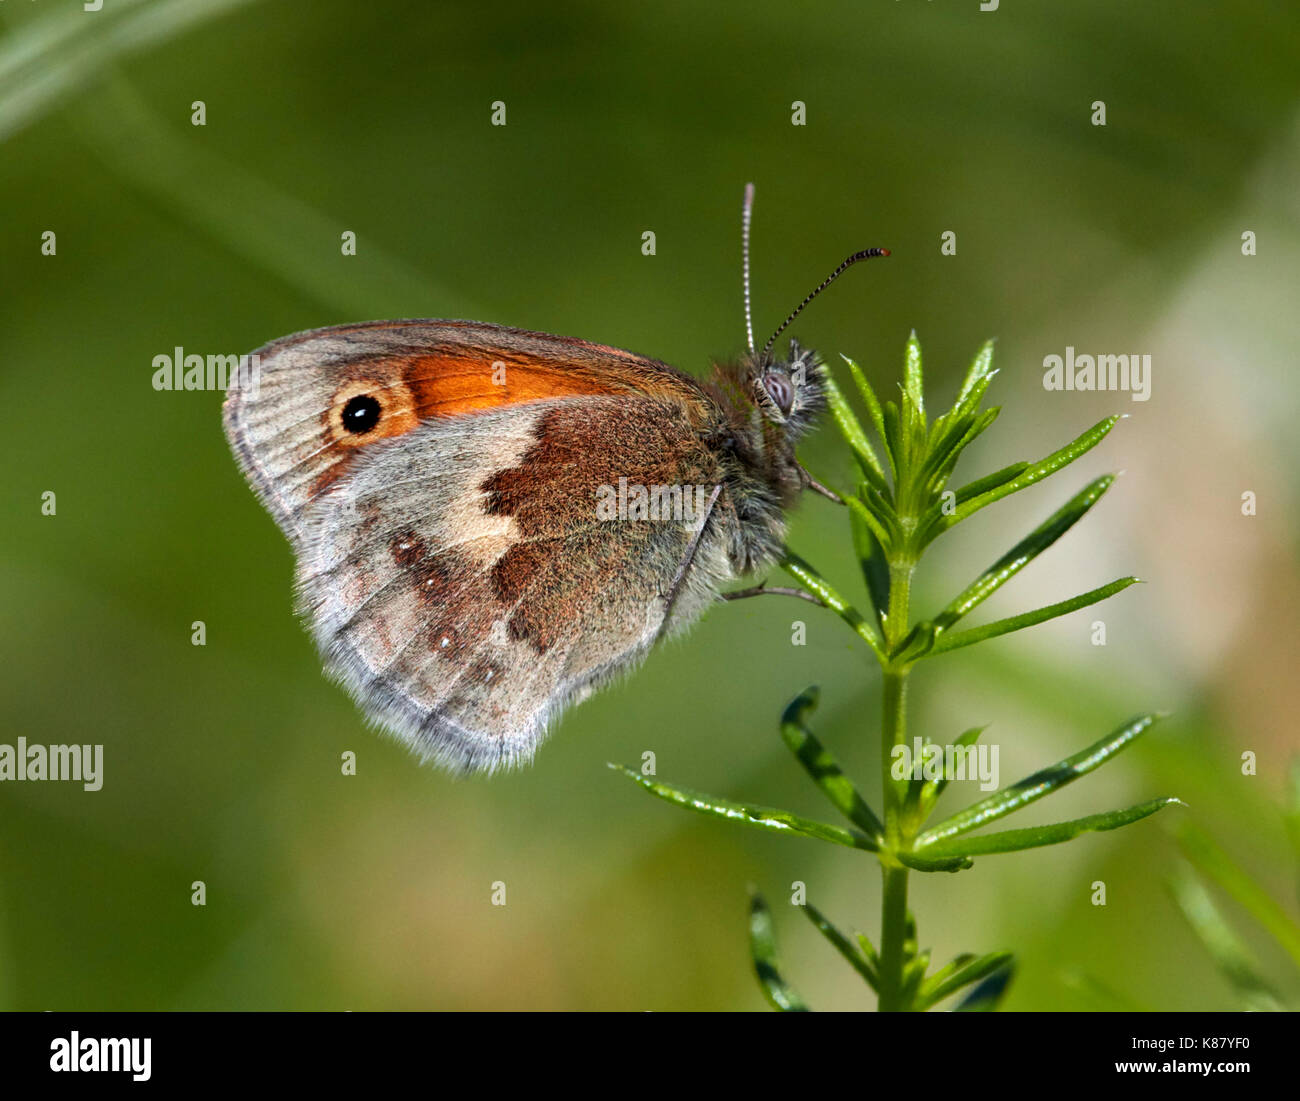 Small Heath butterfly perched on Lady's Bedstraw. Hurst Meadows, East Molesey, Surrey, UK. - Stock Image